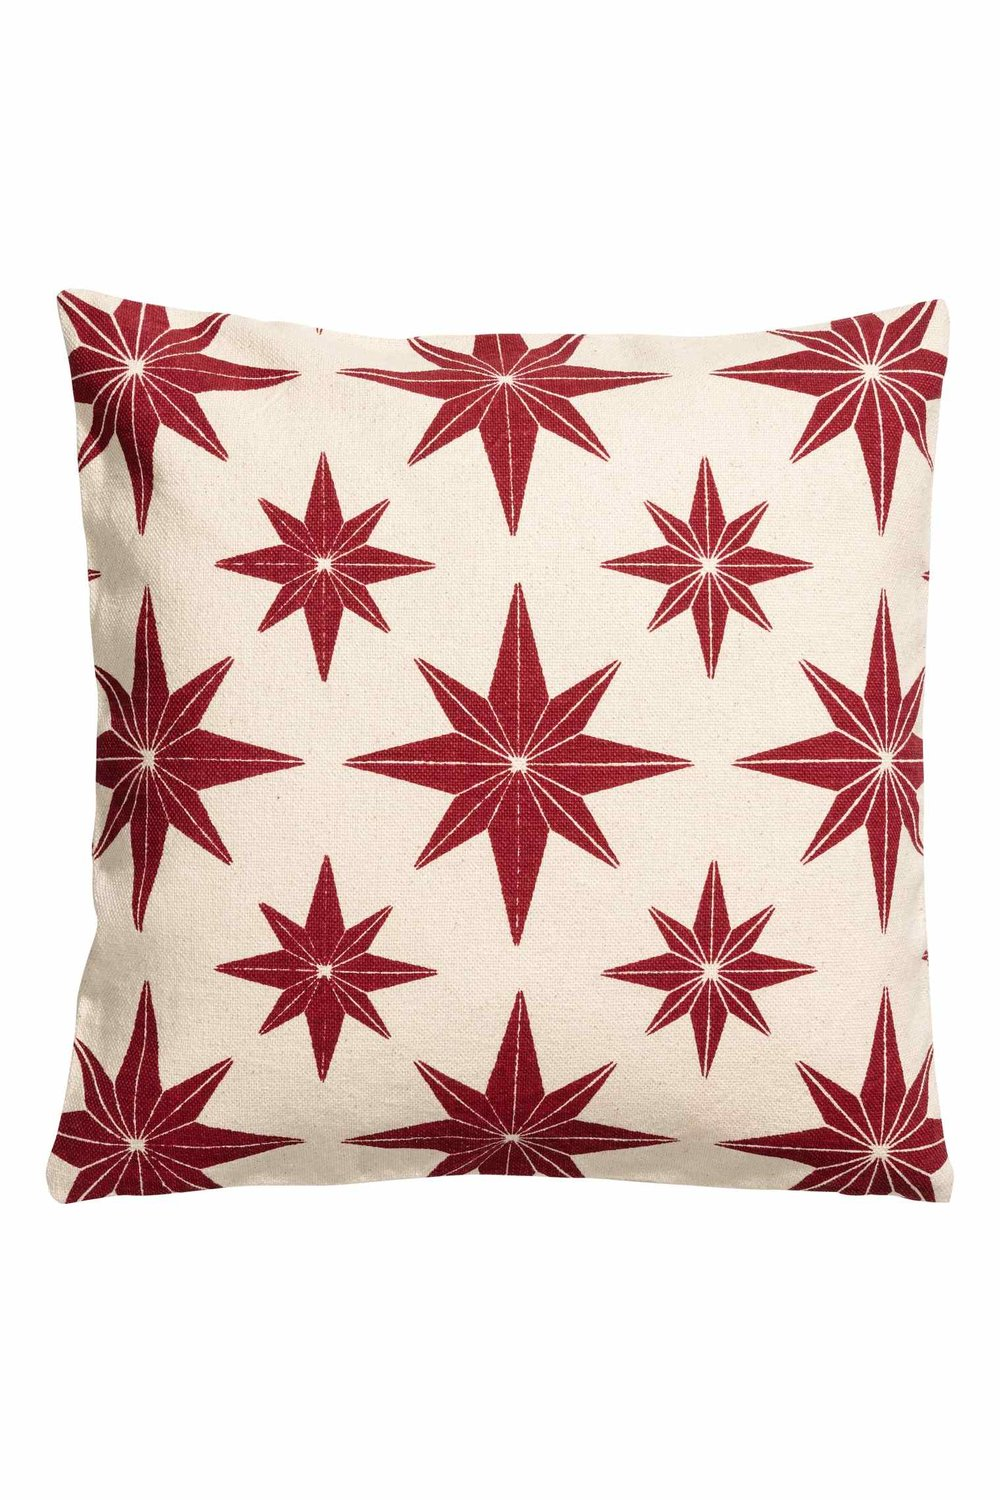 Chritsmas print cushions.jpeg